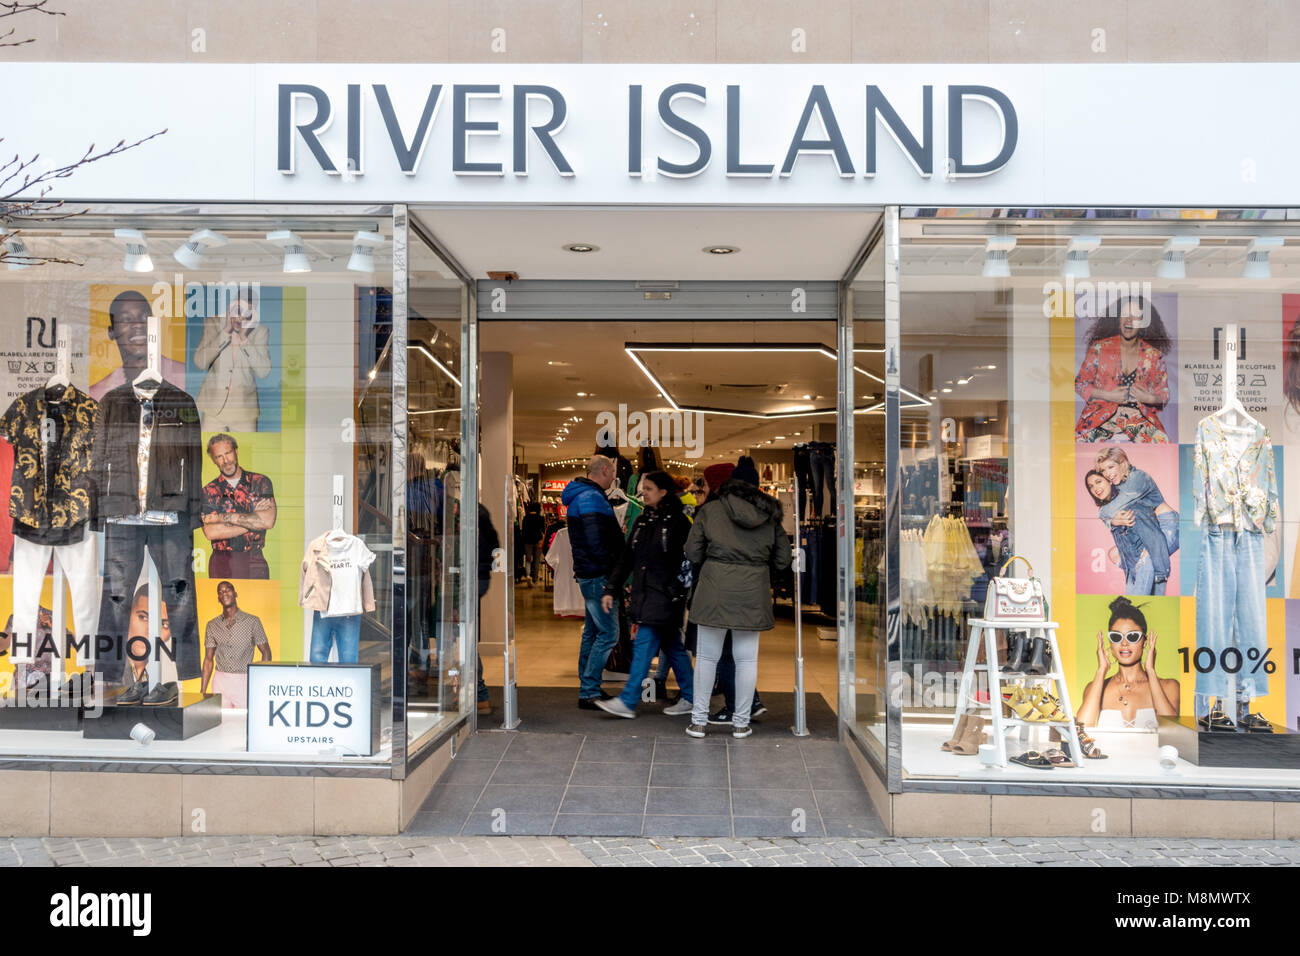 c7064e808 The River Island clothes shop on Peascod Street in Windsor, UK. river Island  is a chain store with shops around the country.